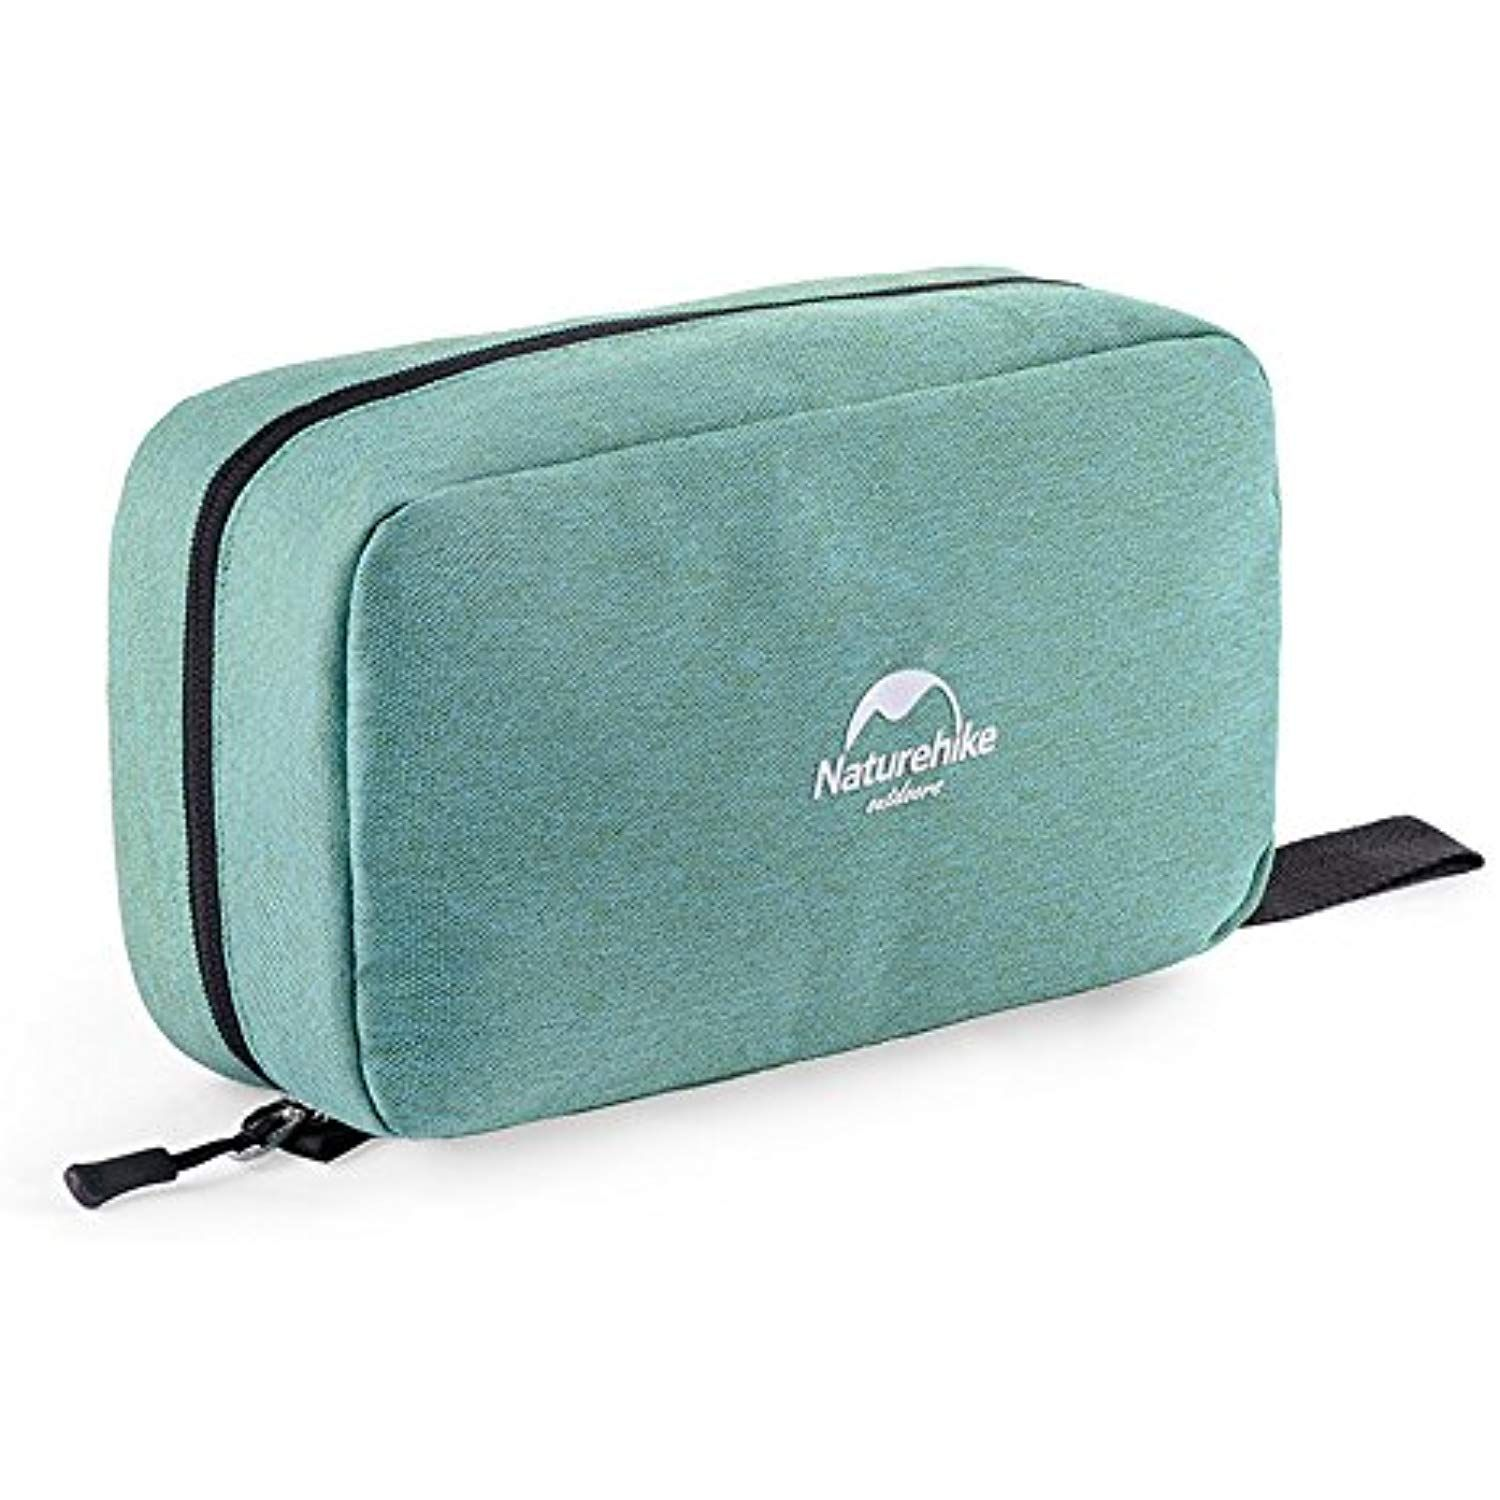 Toiletry Bag Compact Toiletry Bag Large Storage Capacity With Hanging Hook Waterproof Travel Organizer And Storage As Bathroom A Large Bags Toiletry Bag Bags